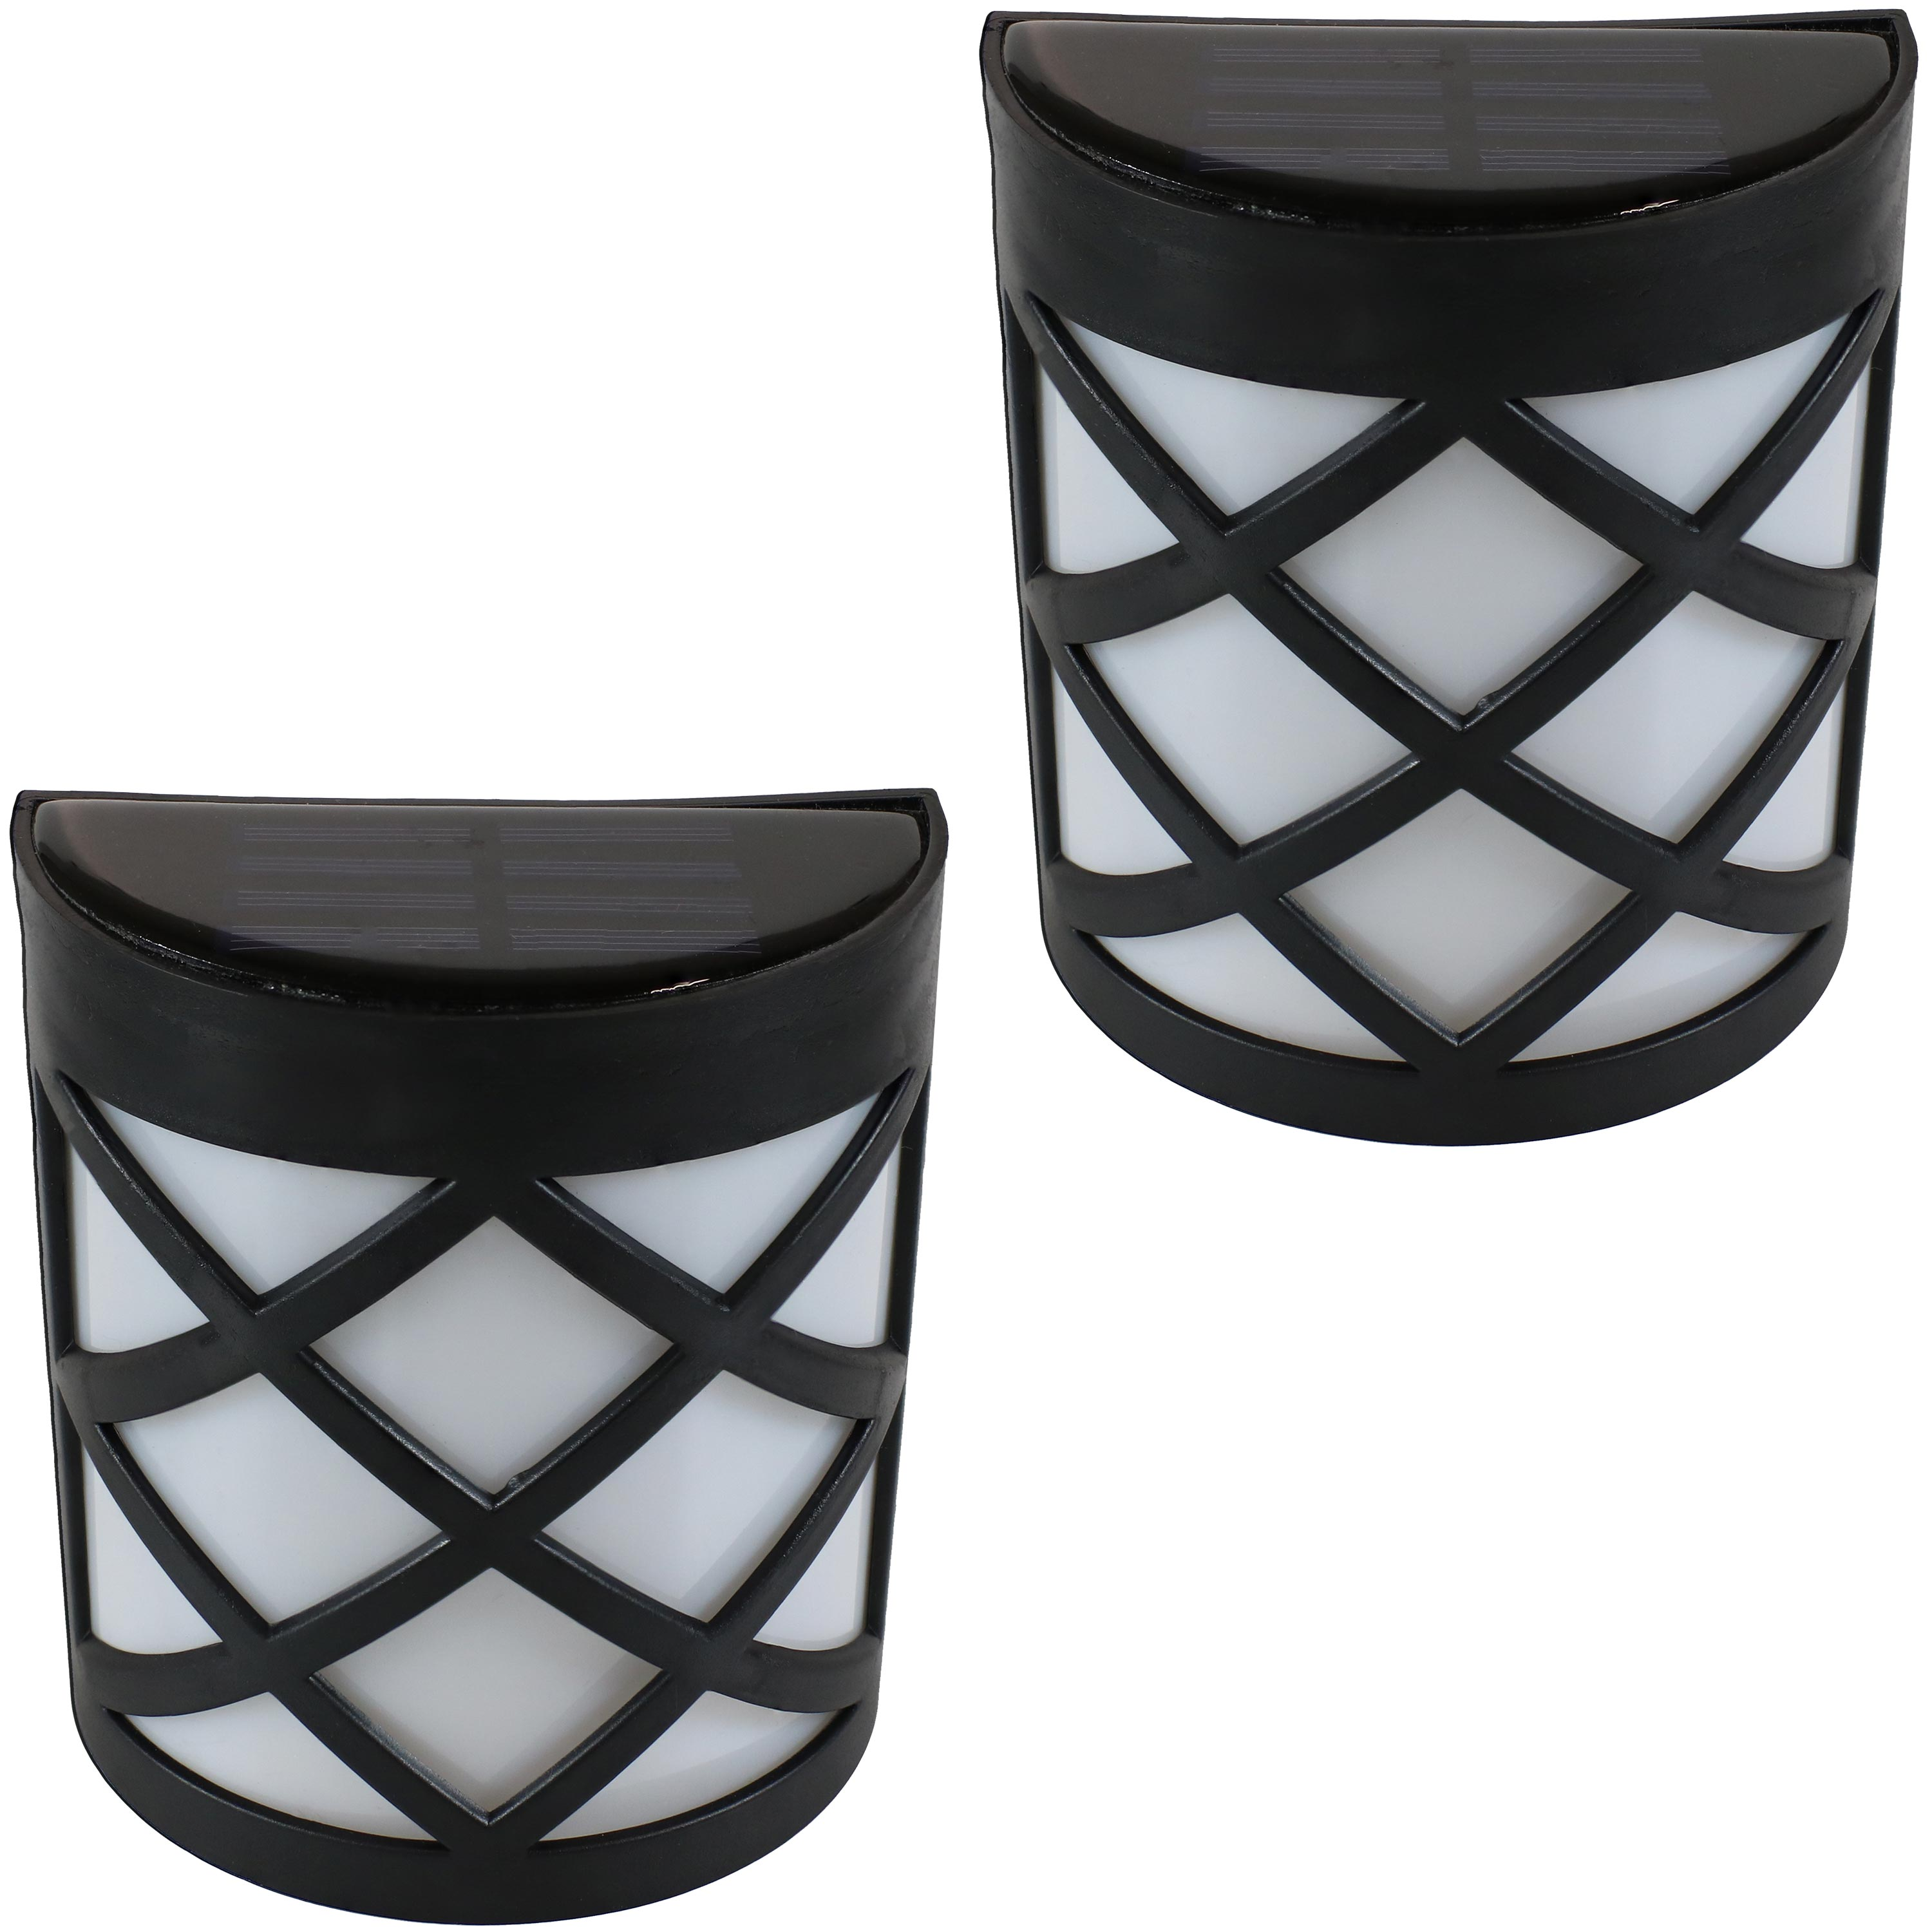 Sunnydaze Outdoor Solar LED Wall Mount Lights, Crosshatch Design, Set of 2